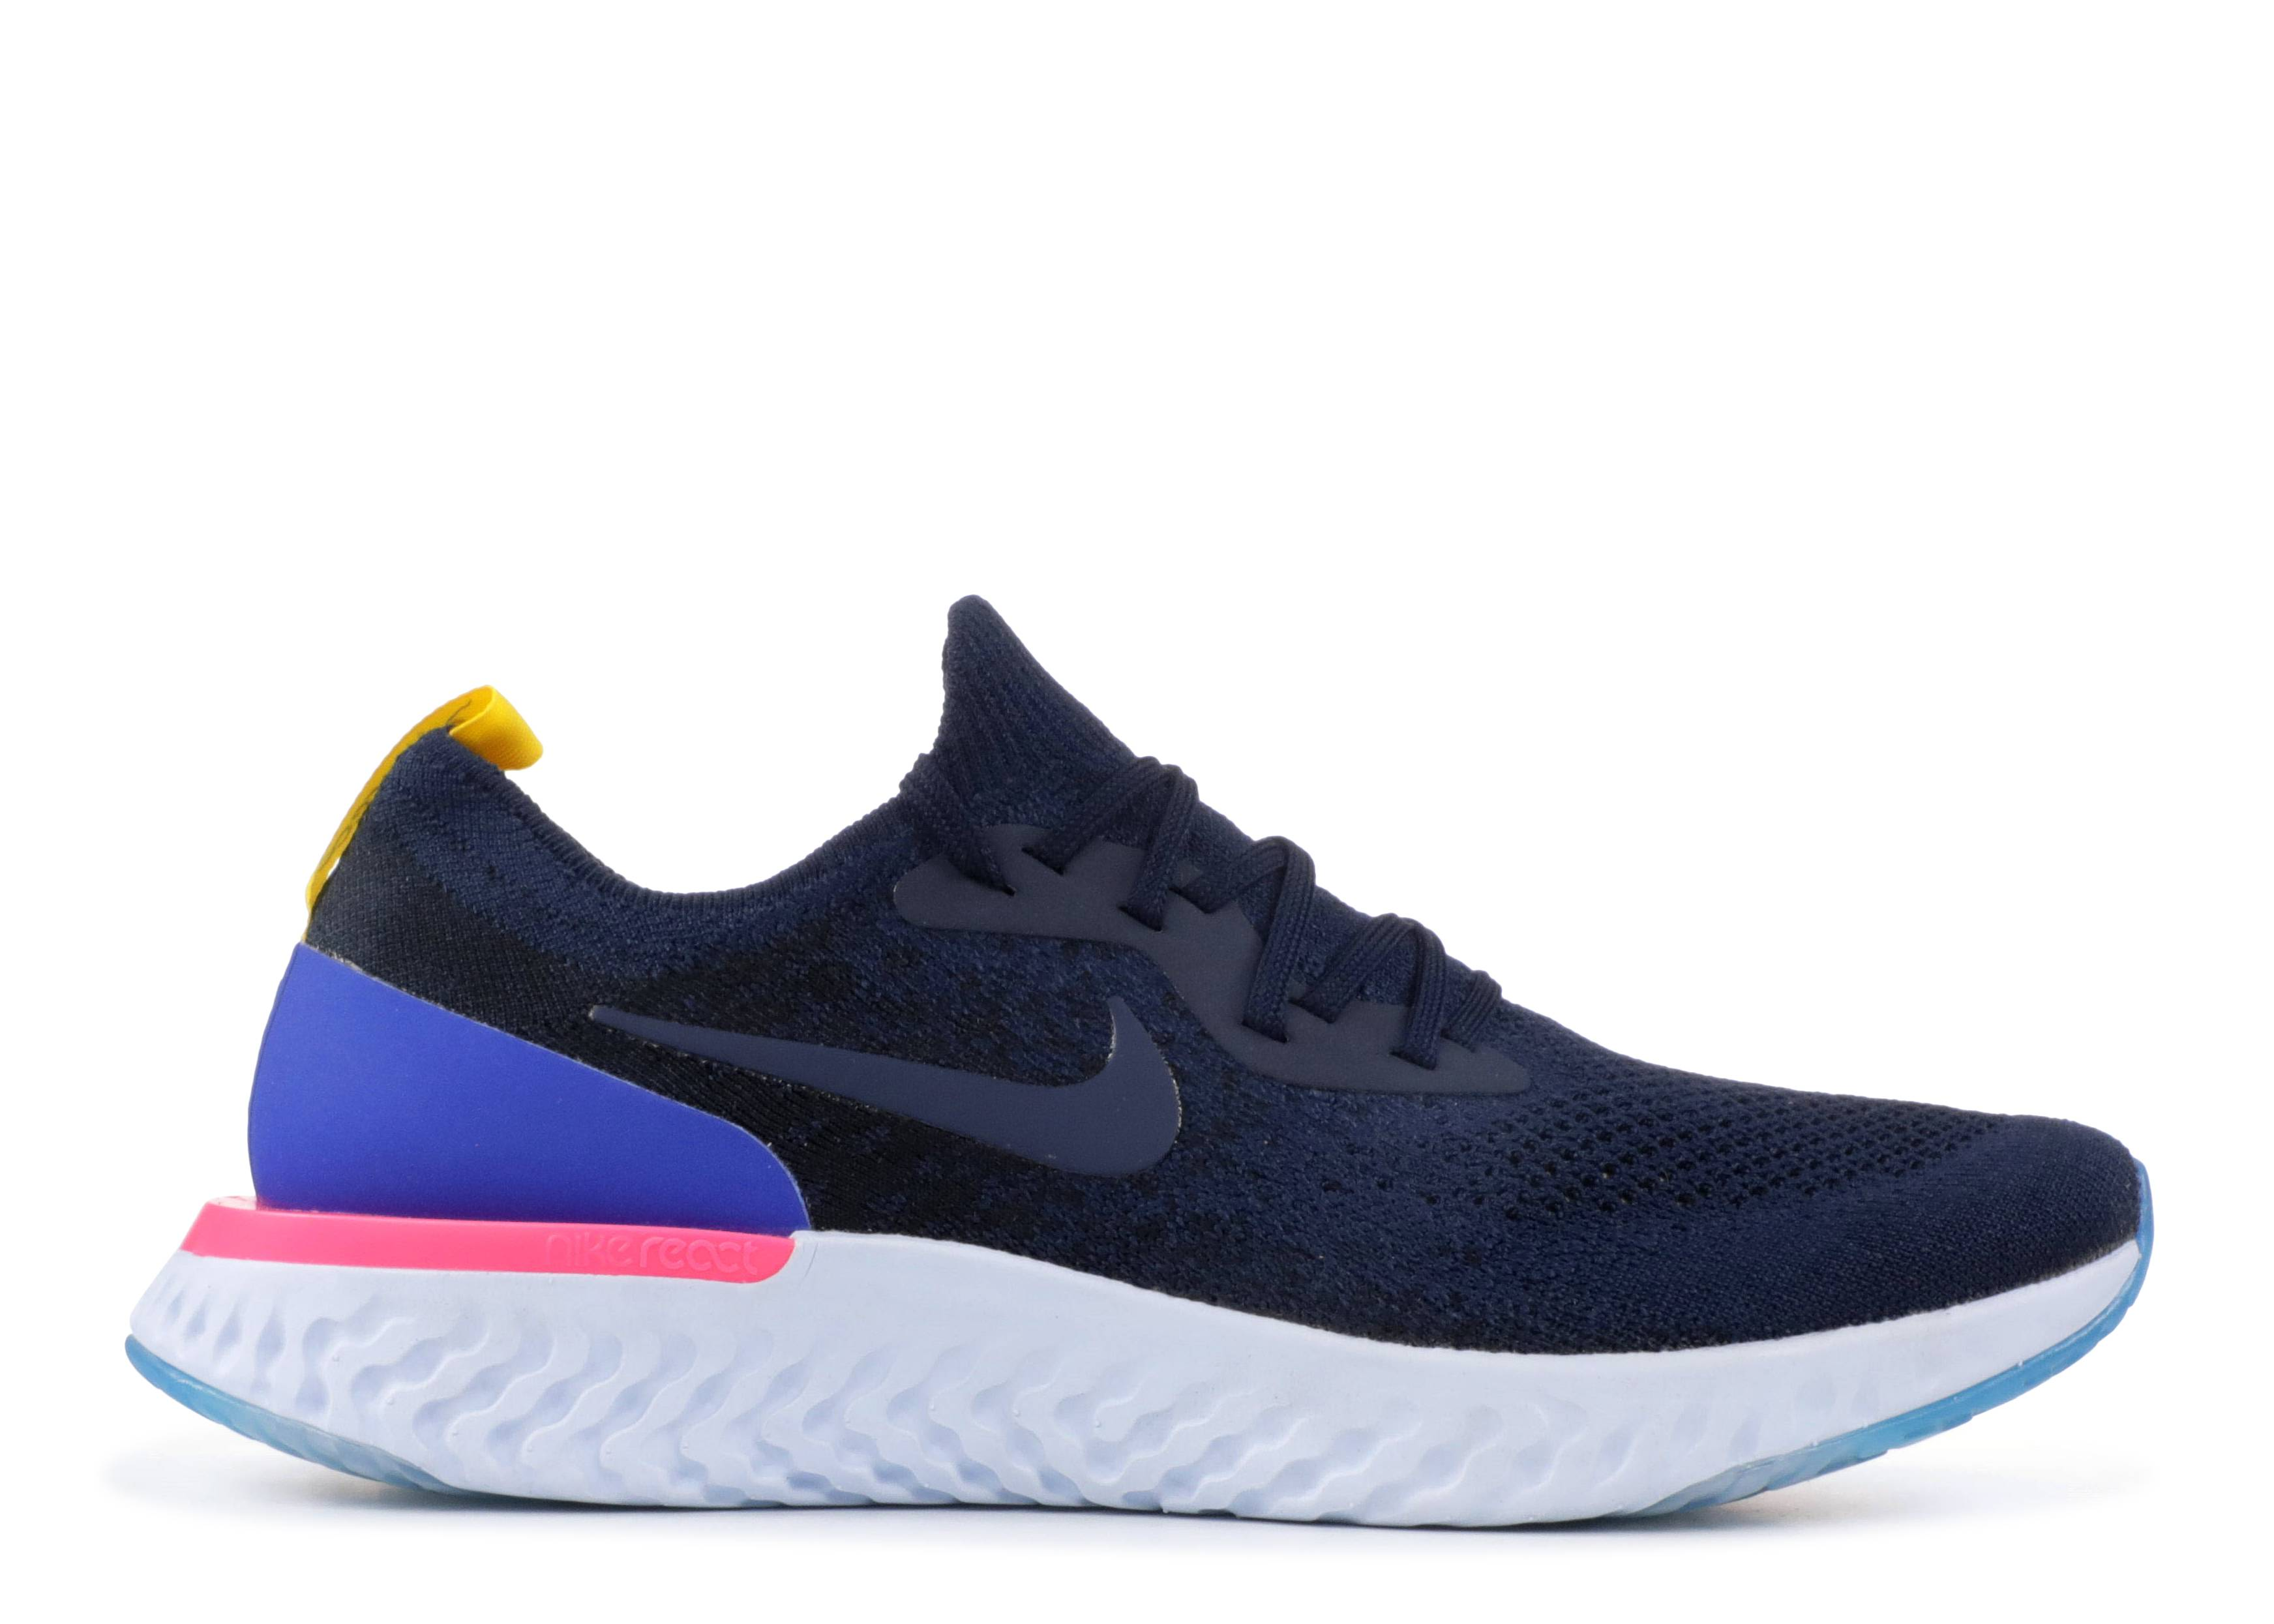 e05c1783349df Wmns Nike Epic React Flyknit - Nike - aq0070 400 - college navy ...